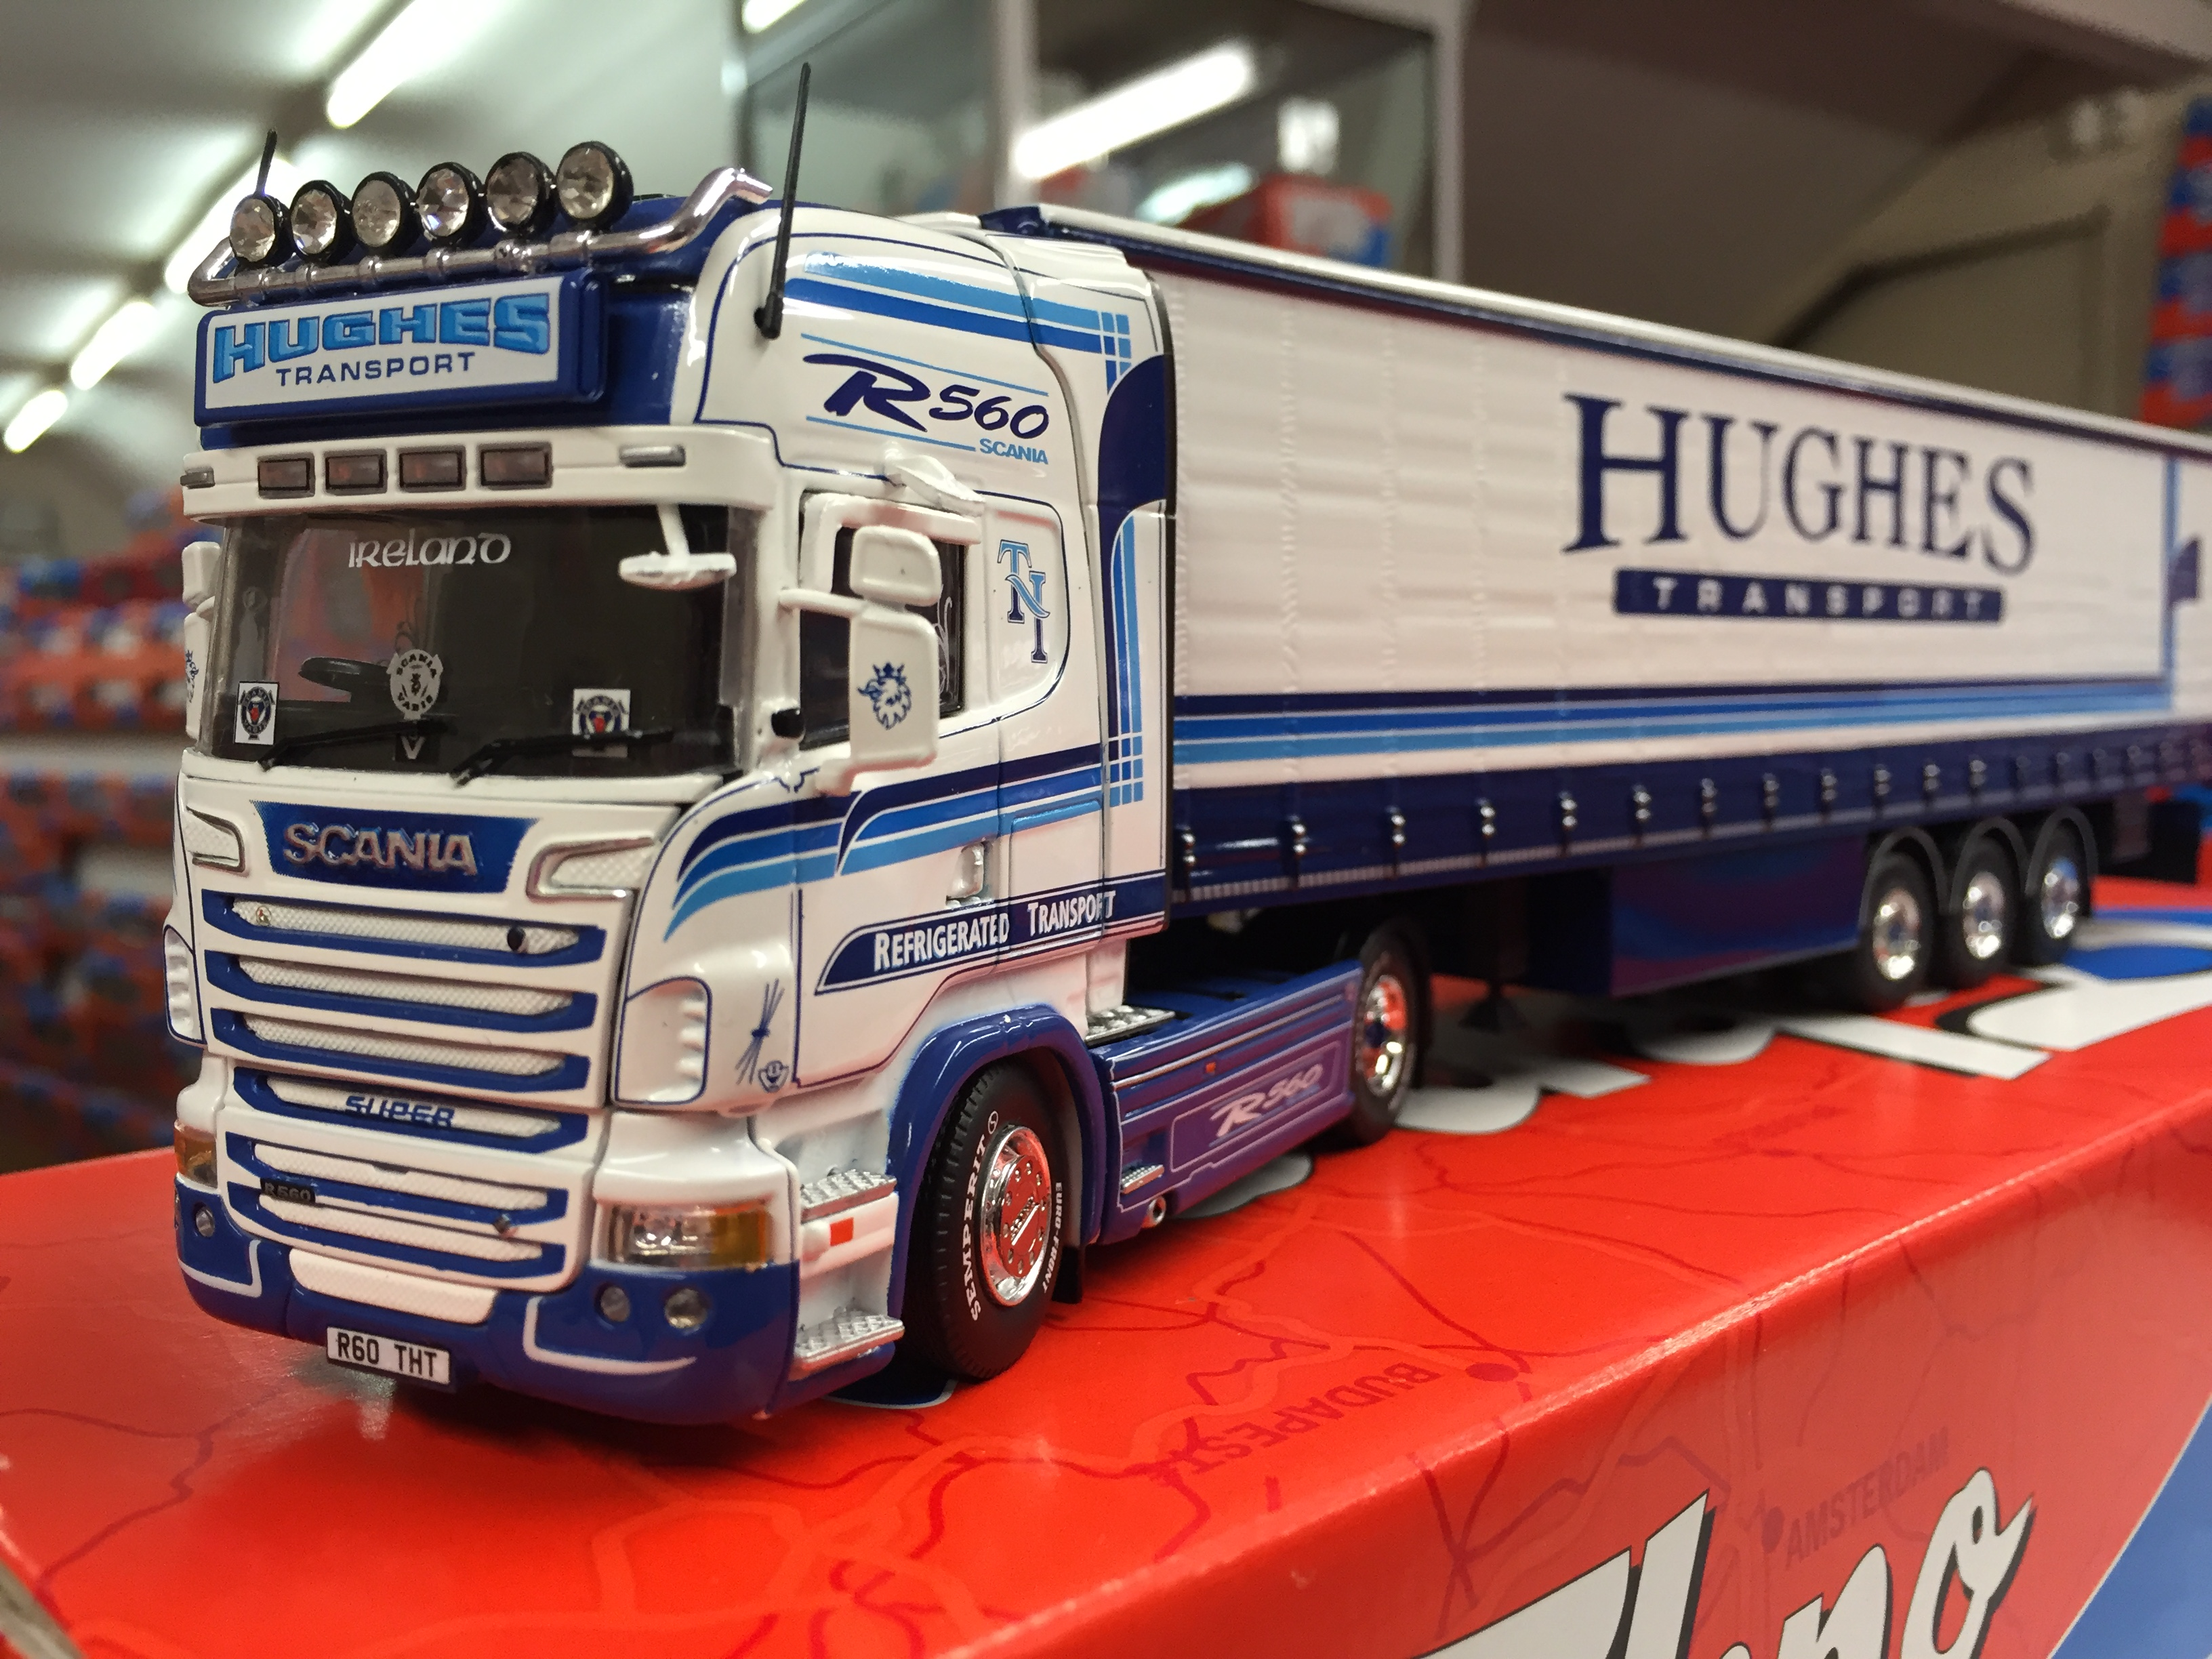 Hughes Transport- Collectors Toys